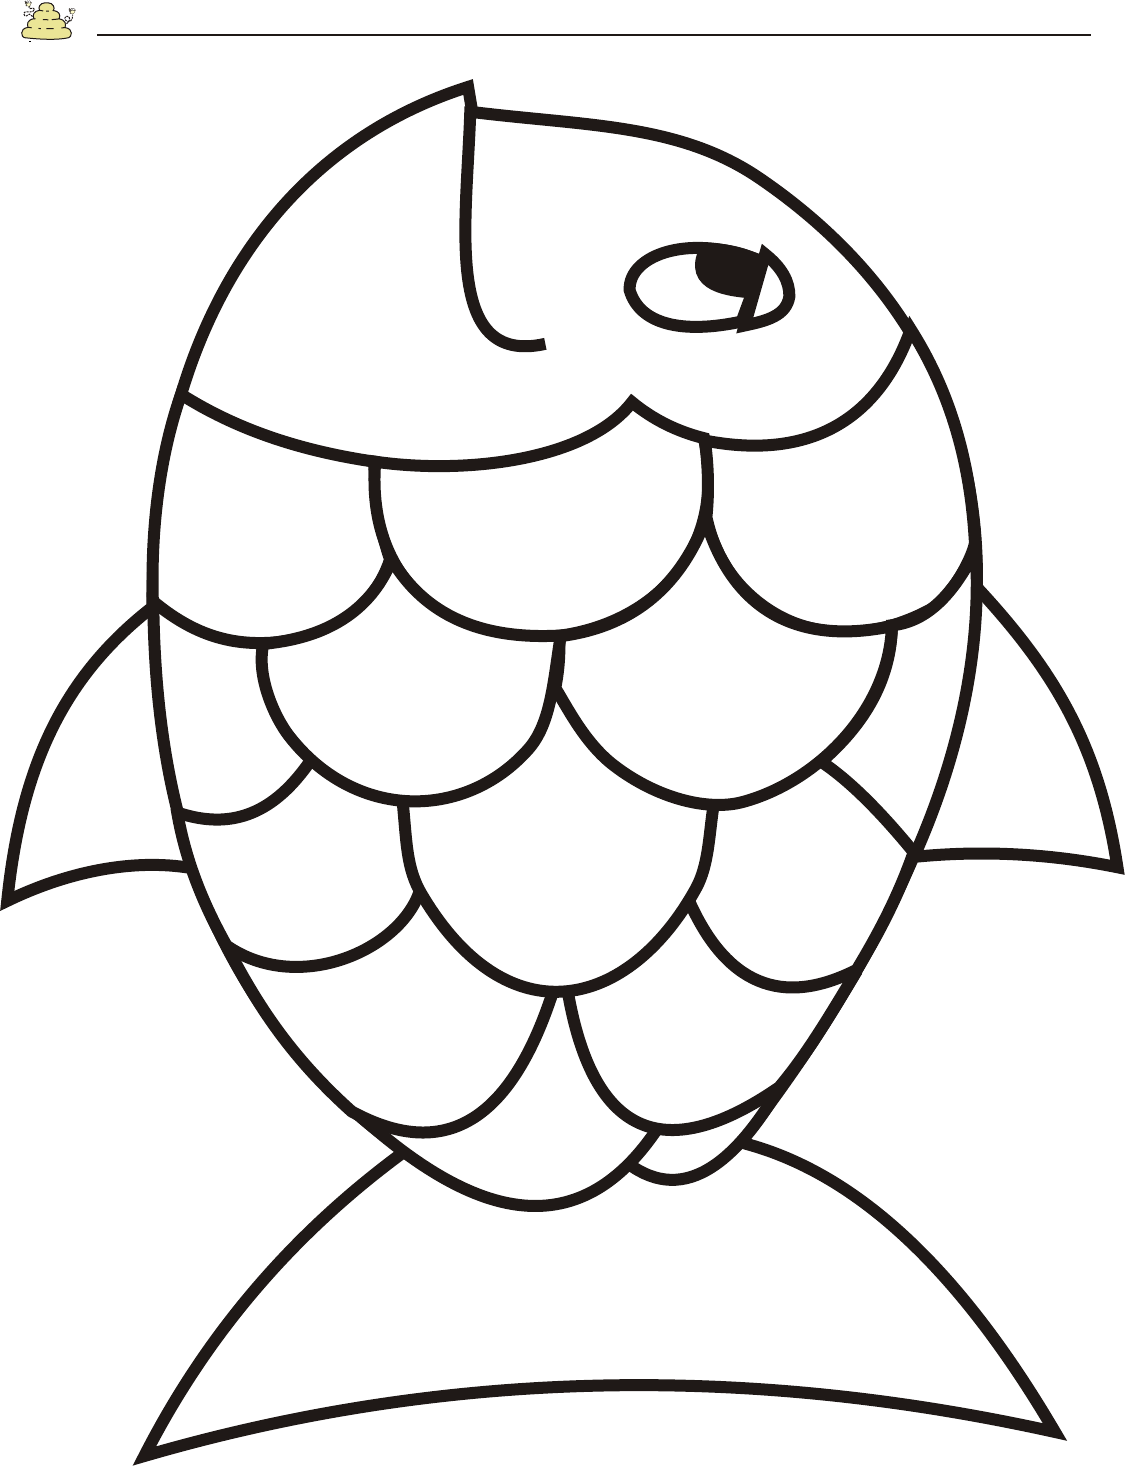 Free rainbow fish template pdf 2 page s page 2 for Fish coloring pages for preschool